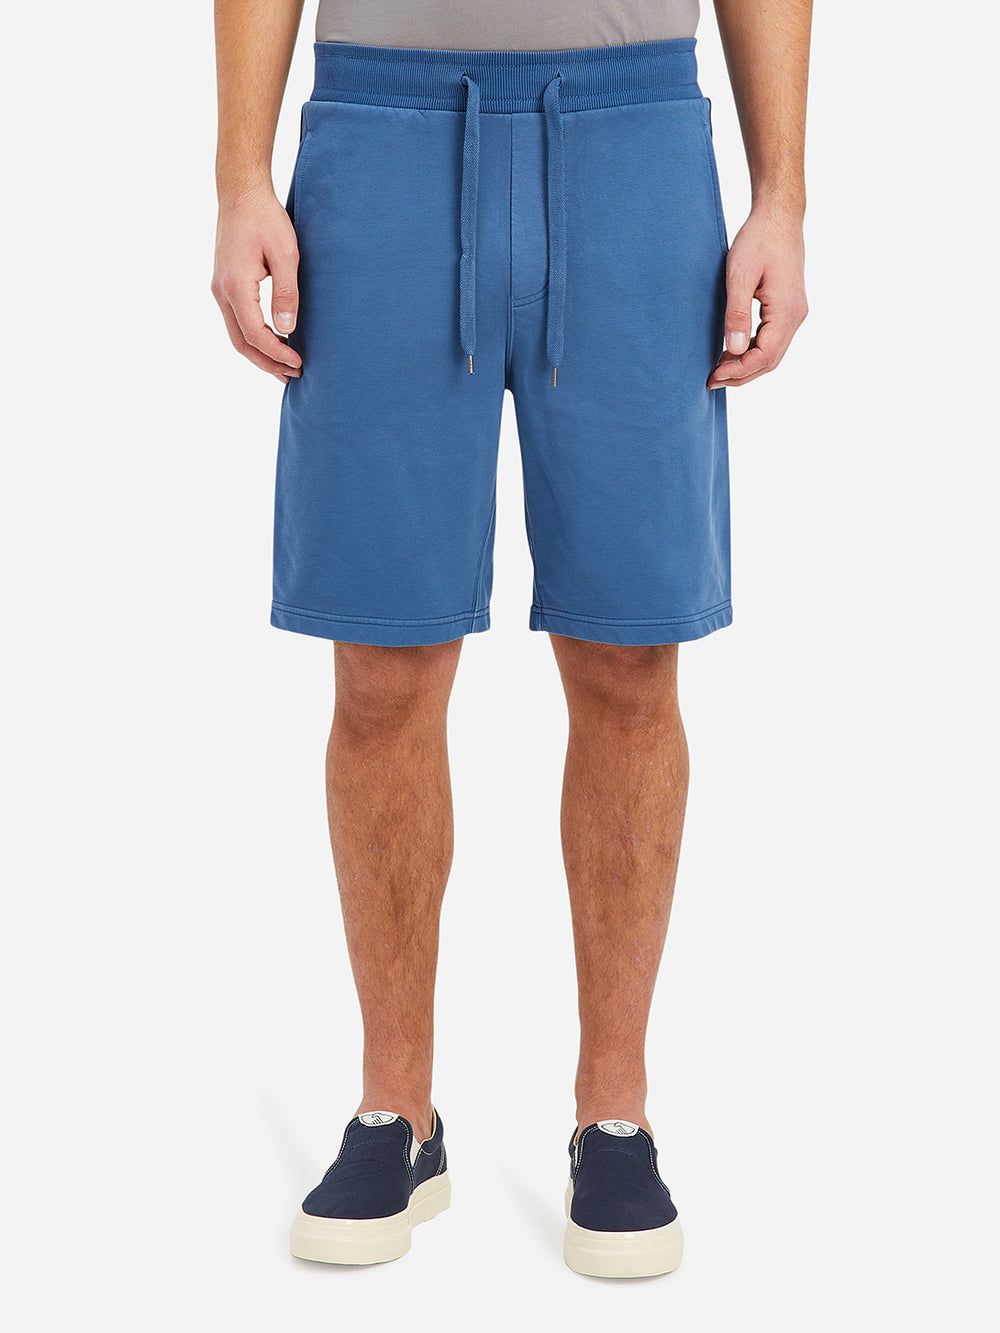 Ensign Blue Eze French Terry Shorts Men's cotton shorts ONS Clothing